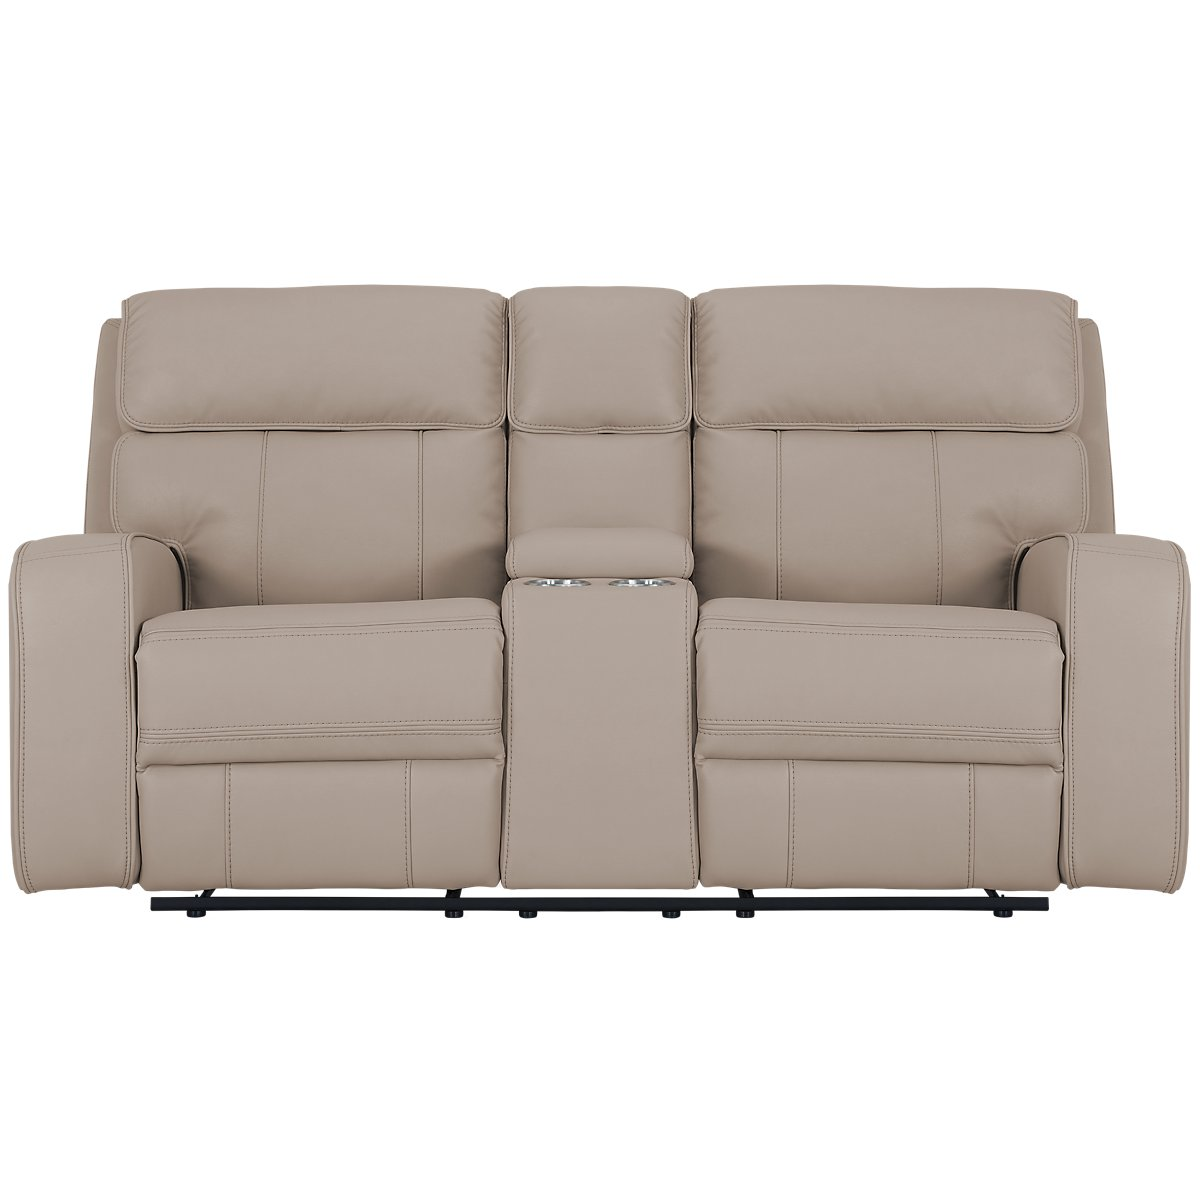 City Furniture Rhett Taupe Microfiber Reclining Console Loveseat